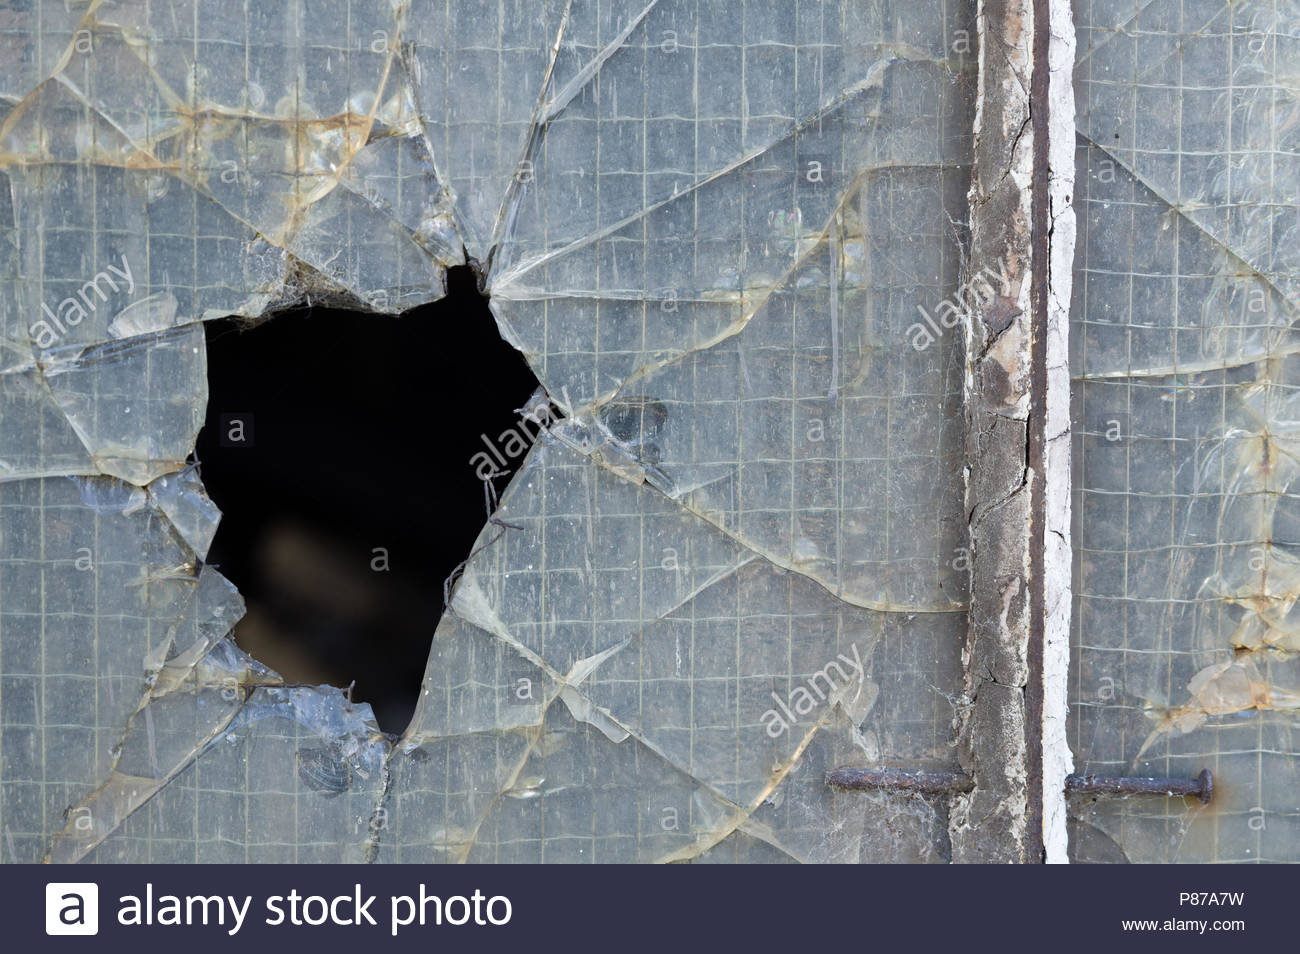 Cracked Reinforced Glass Window Stock Photos & Cracked Reinforced ...